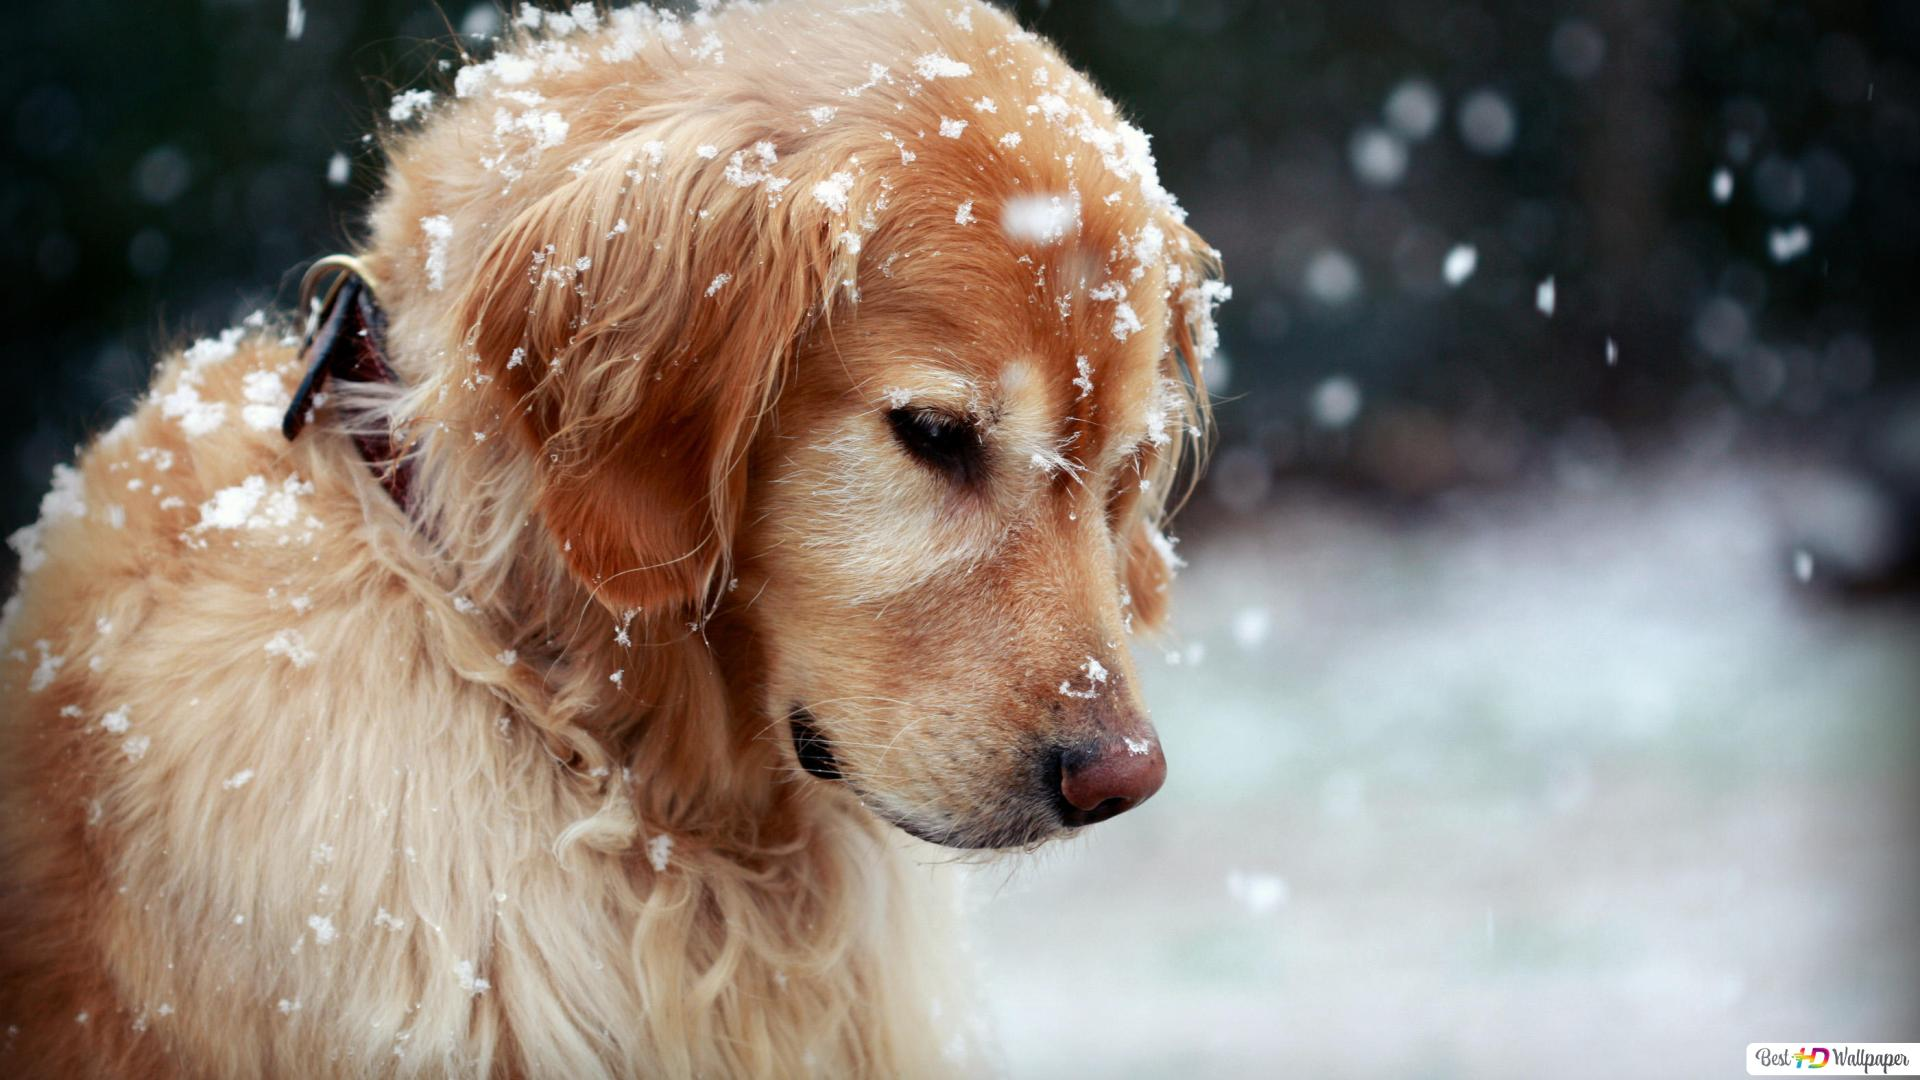 Cute Dog In The Snowfall Hd Wallpaper Download